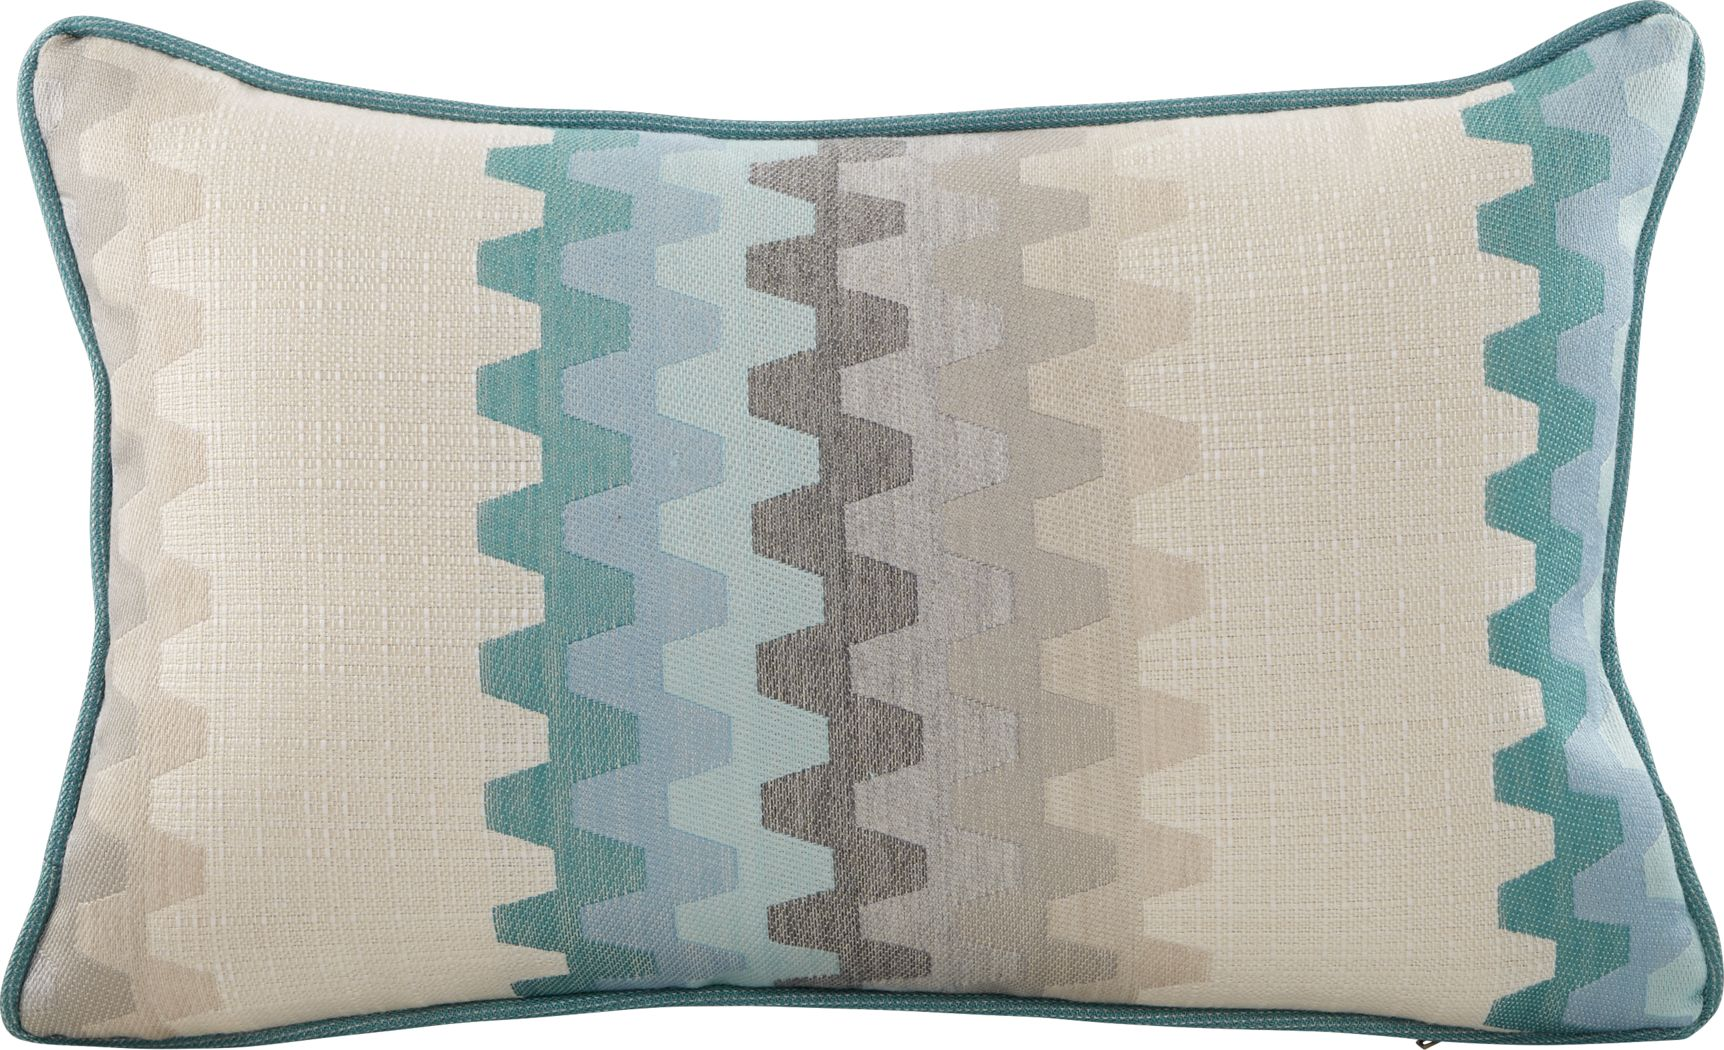 Outdoor Cushions Pillows For Patio Furniture